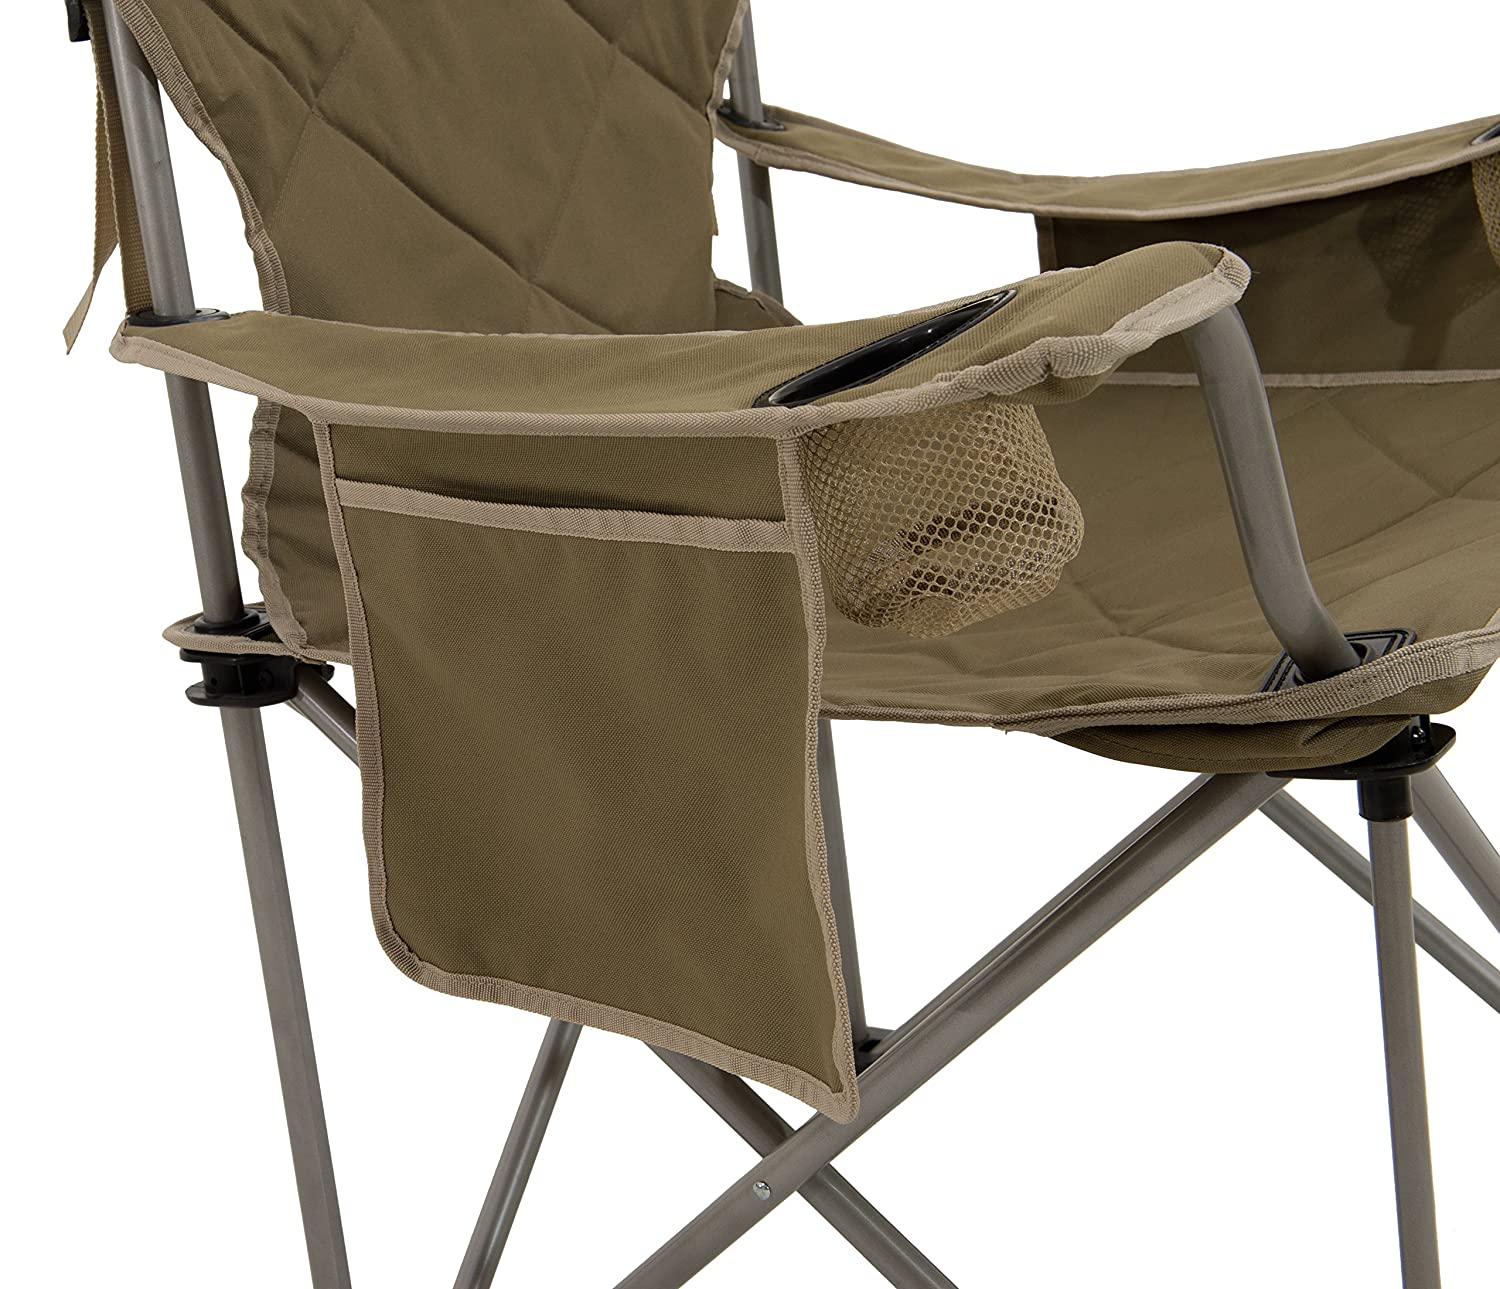 ALPS Mountaineering King Kong Chair Amazon Sports & Outdoors